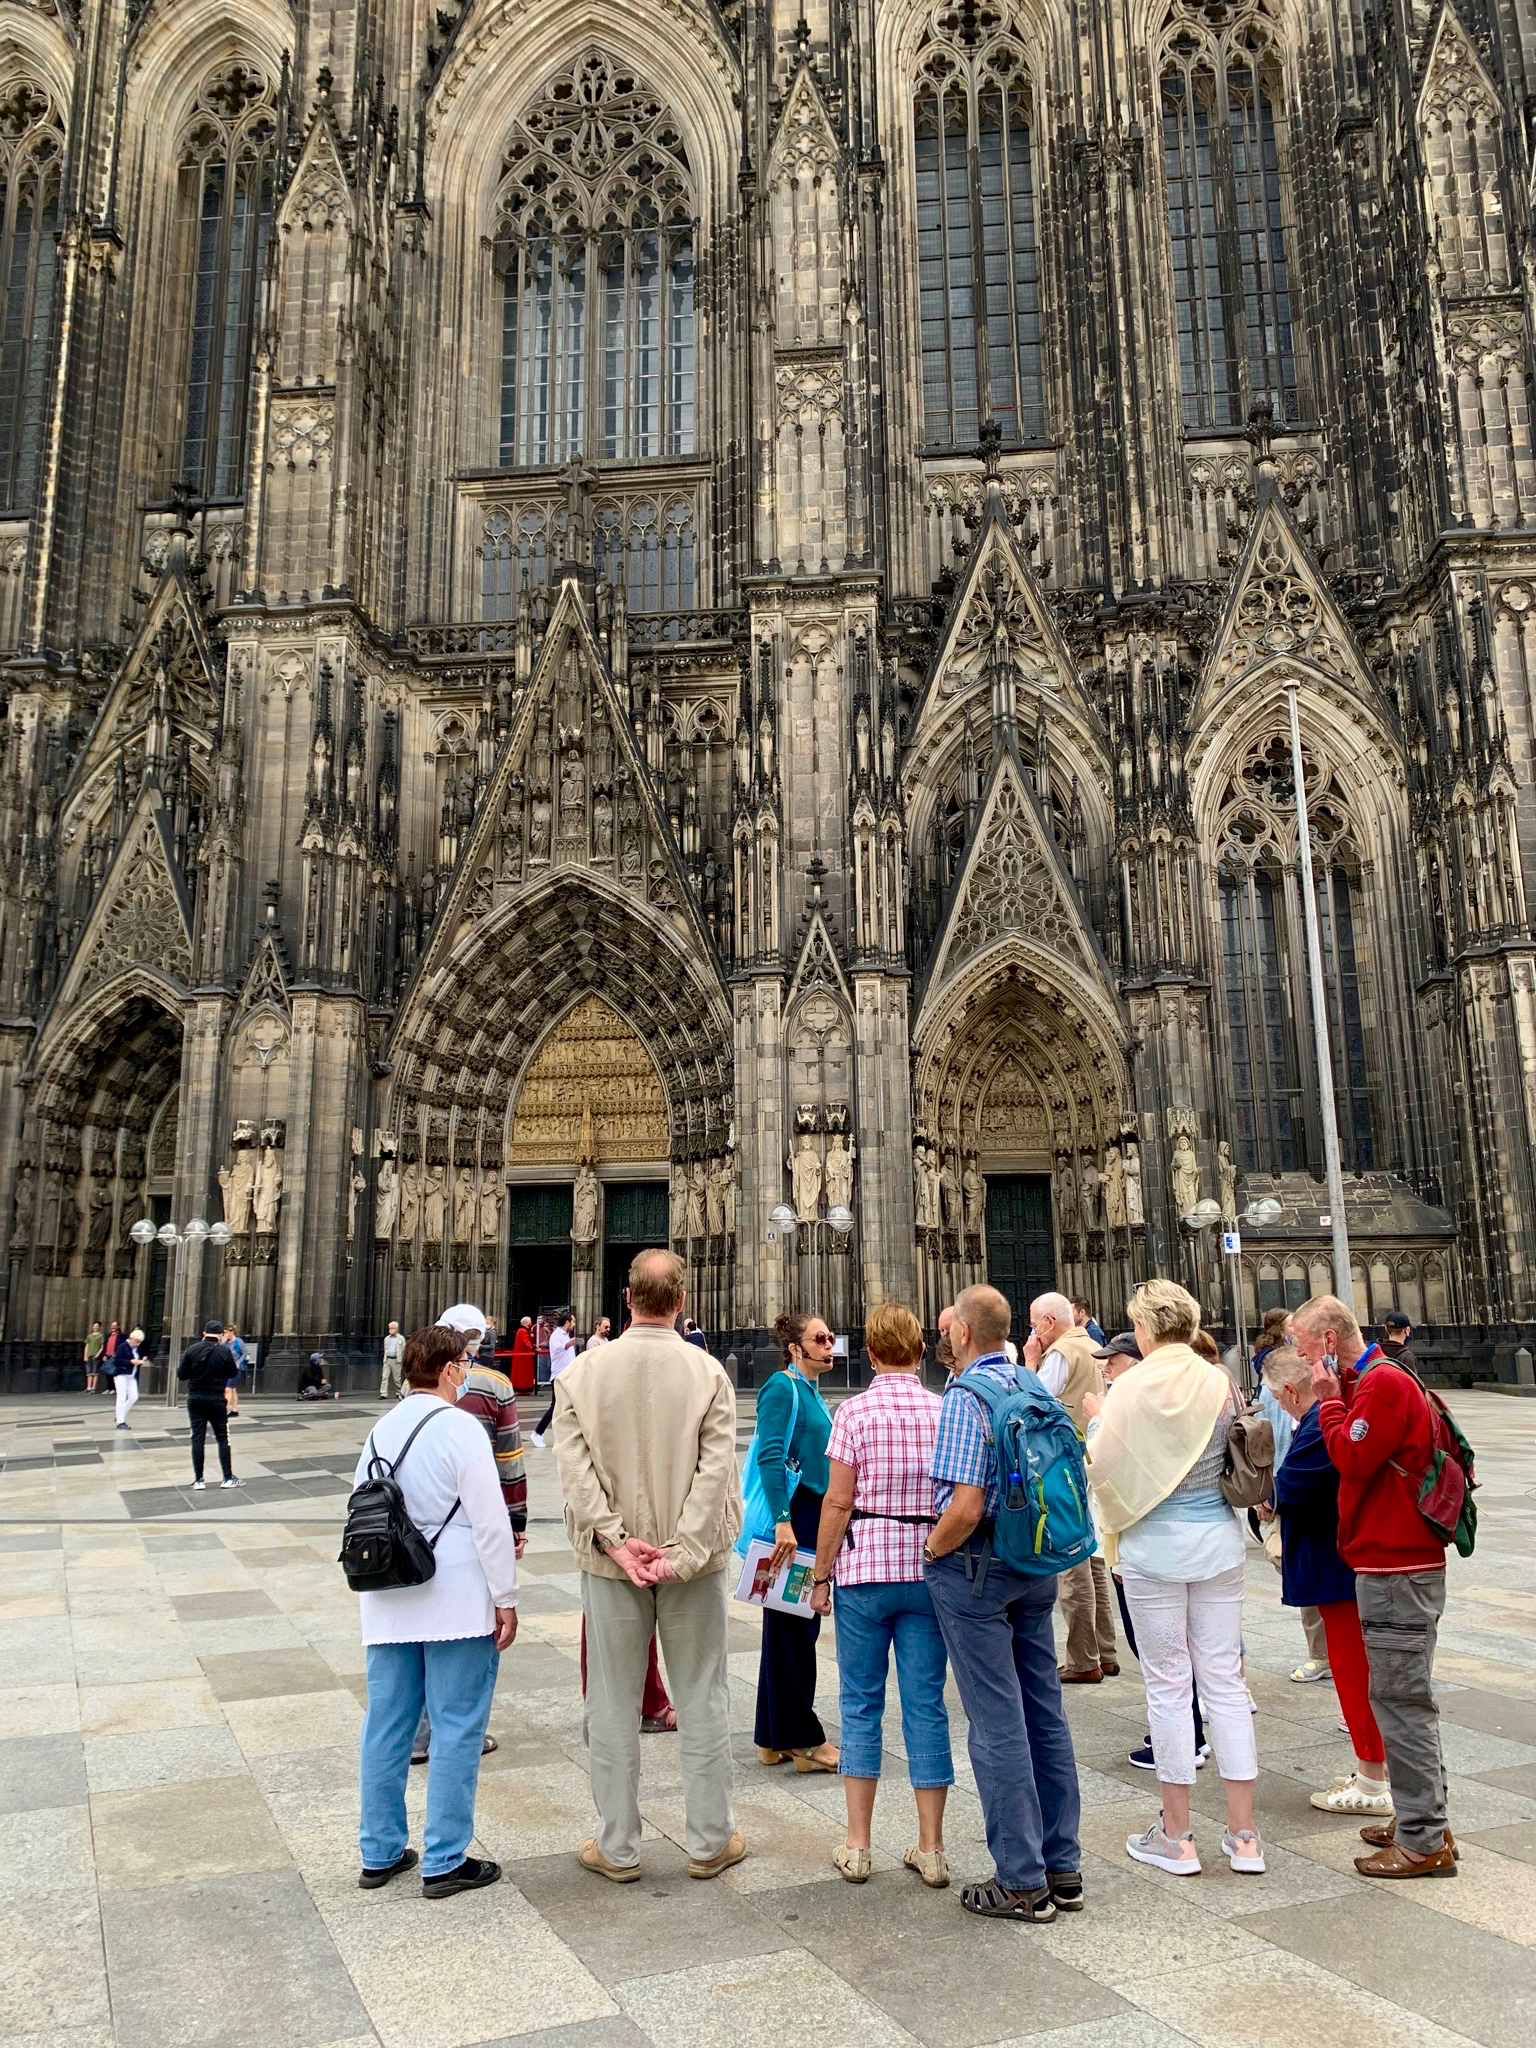 Walking tour group stands outside the main entrance of the Cologne Cathedral